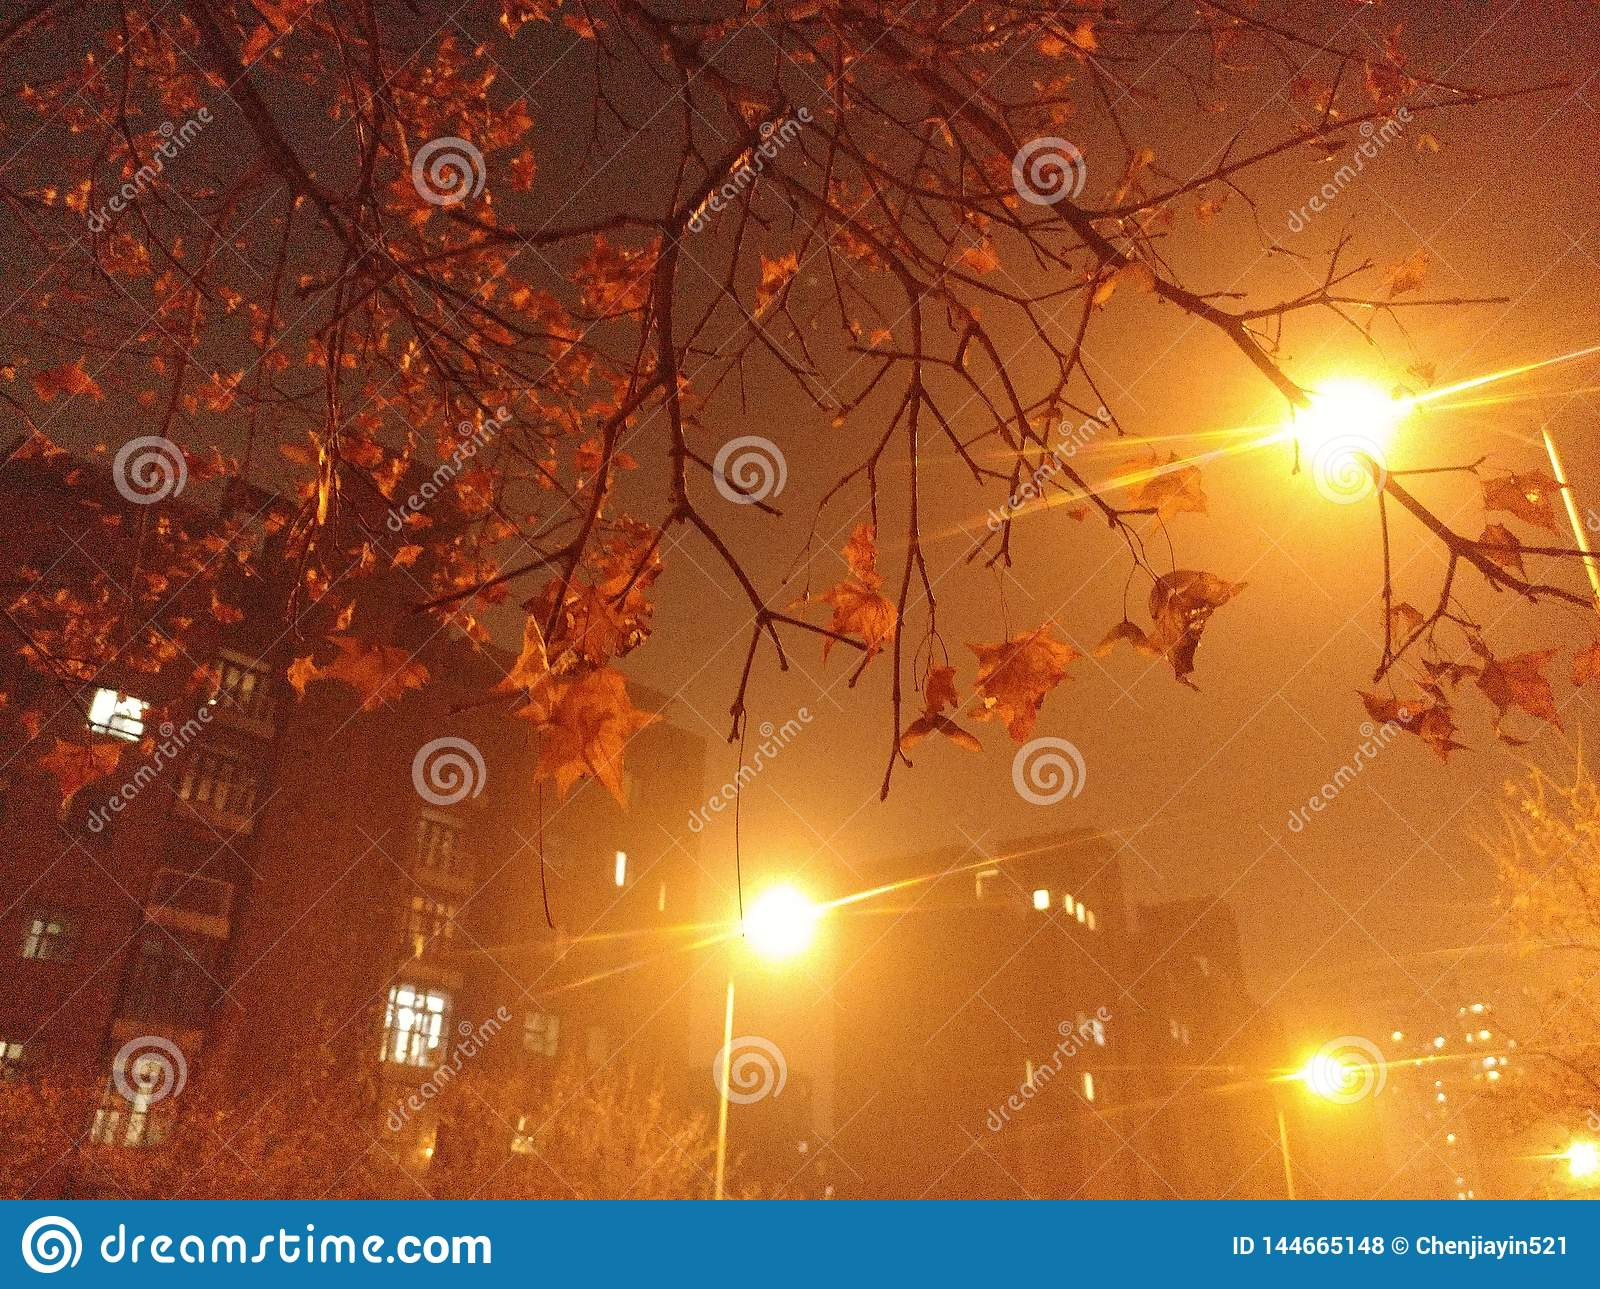 The night in Beijing in autumn, though beautiful, is full of haze